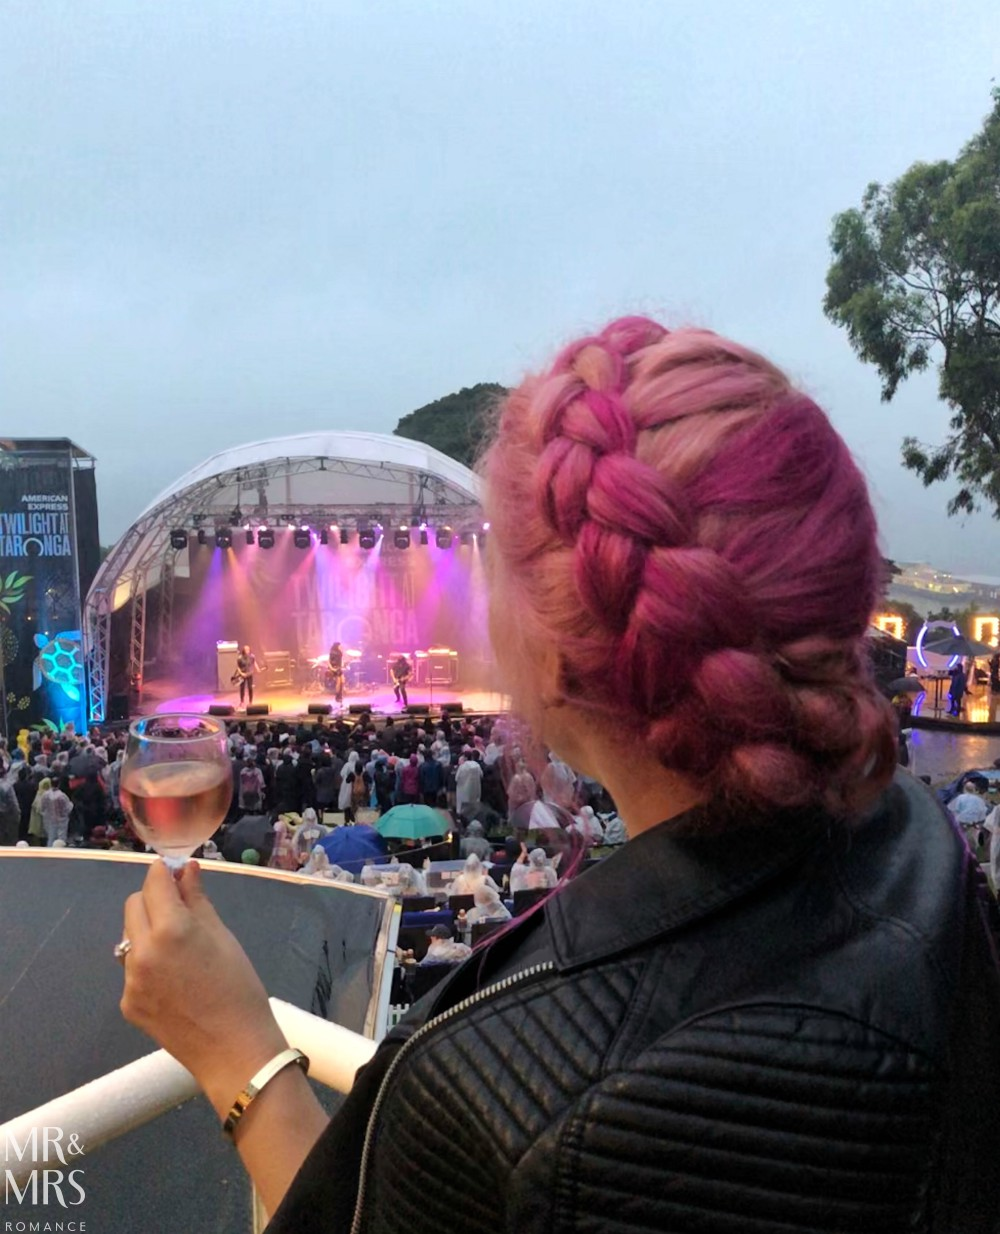 Twilight at Taronga with Amex - concert Ricochet Maddie Jane, Magic Dirt, You Am I